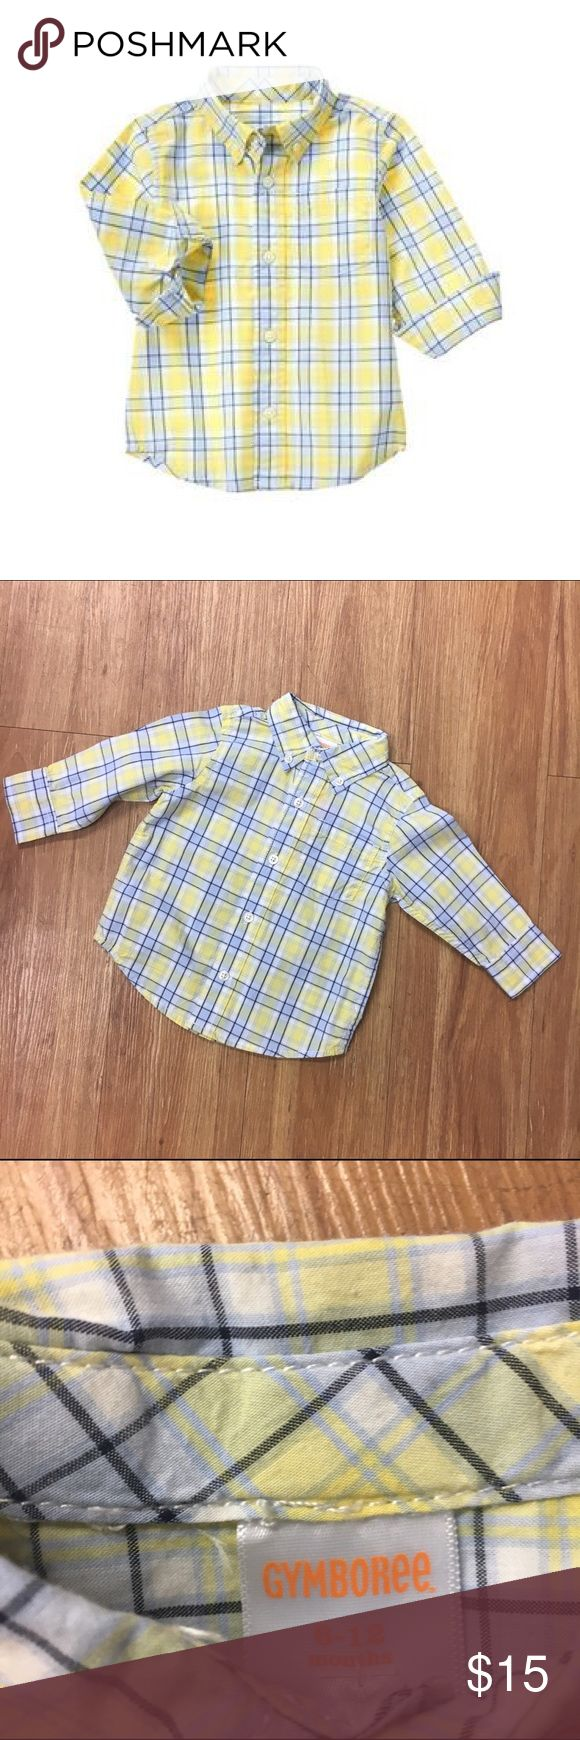 Gymboree Sunshine Yellow Plaid Shirt NEW NWT 6-12 Gymboree Sunshine Yellow Plaid Shirt NEW NWT 6-12 Mo  * 100% cotton poplin * Button front and collar * Chest pocket * Shirttail hem * Back pleat * Machine wash * Collection Name: Marina Party #new #nwt #plaid #yellow #blue #sunshineyellow #marinaparty #shirt #buttonfront #poplin #shirttail Gymboree Shirts & Tops Button Down Shirts